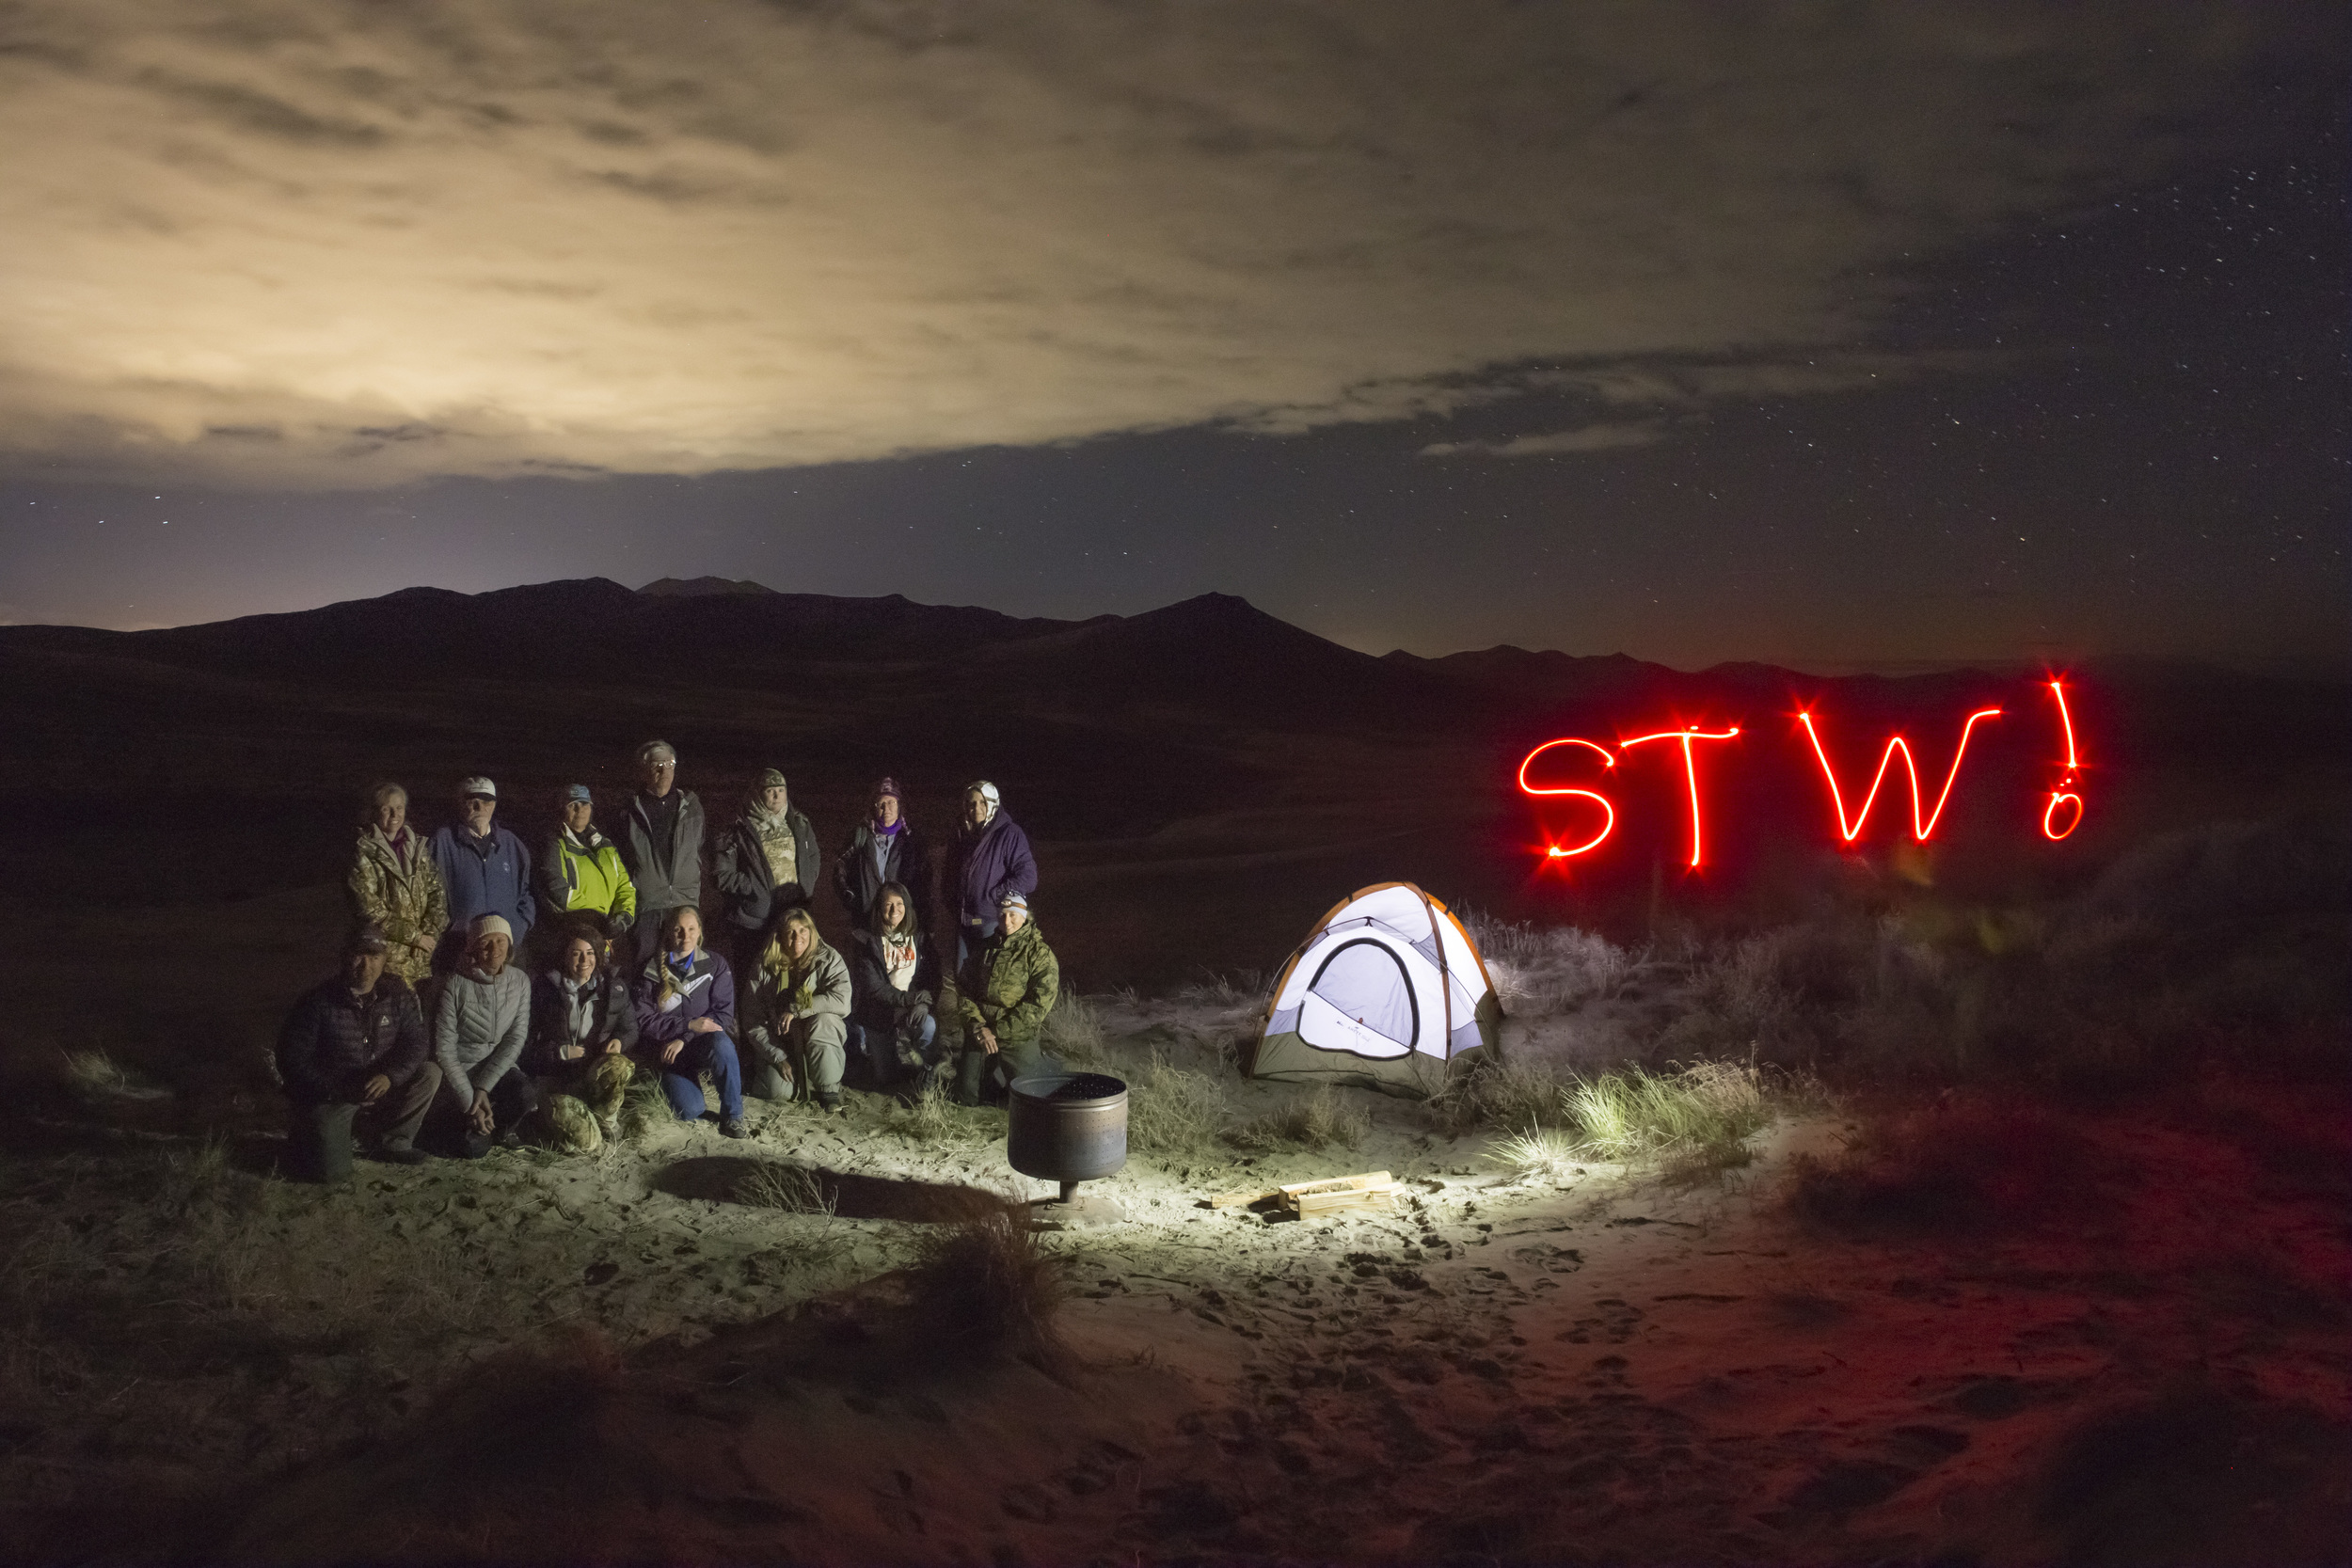 My Landscape Astrophotography class at the 2016 Shooting the West Photography Symposium